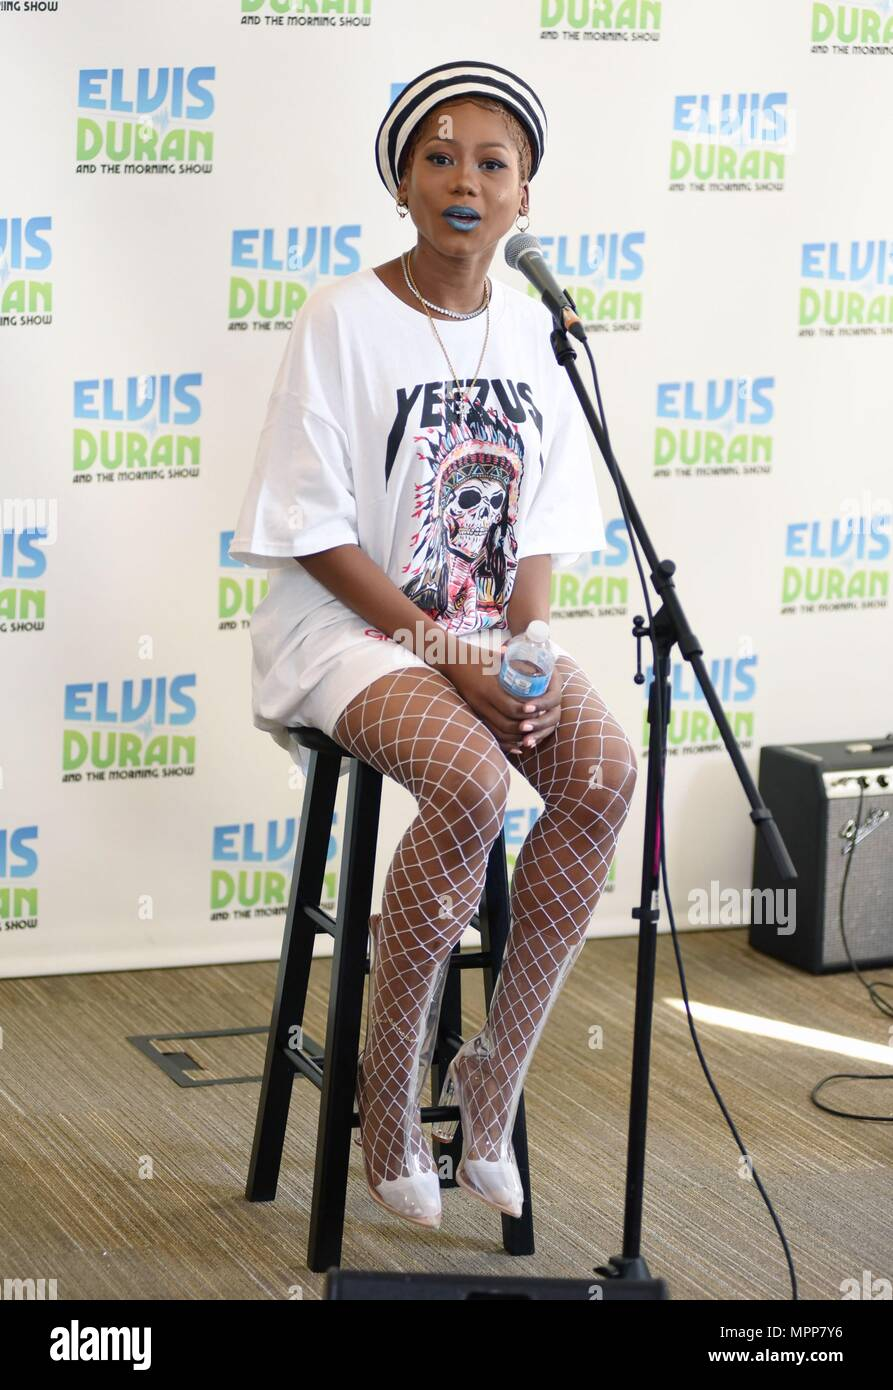 Elvis Duran And The Morning Show On Z 100 Stock Photos